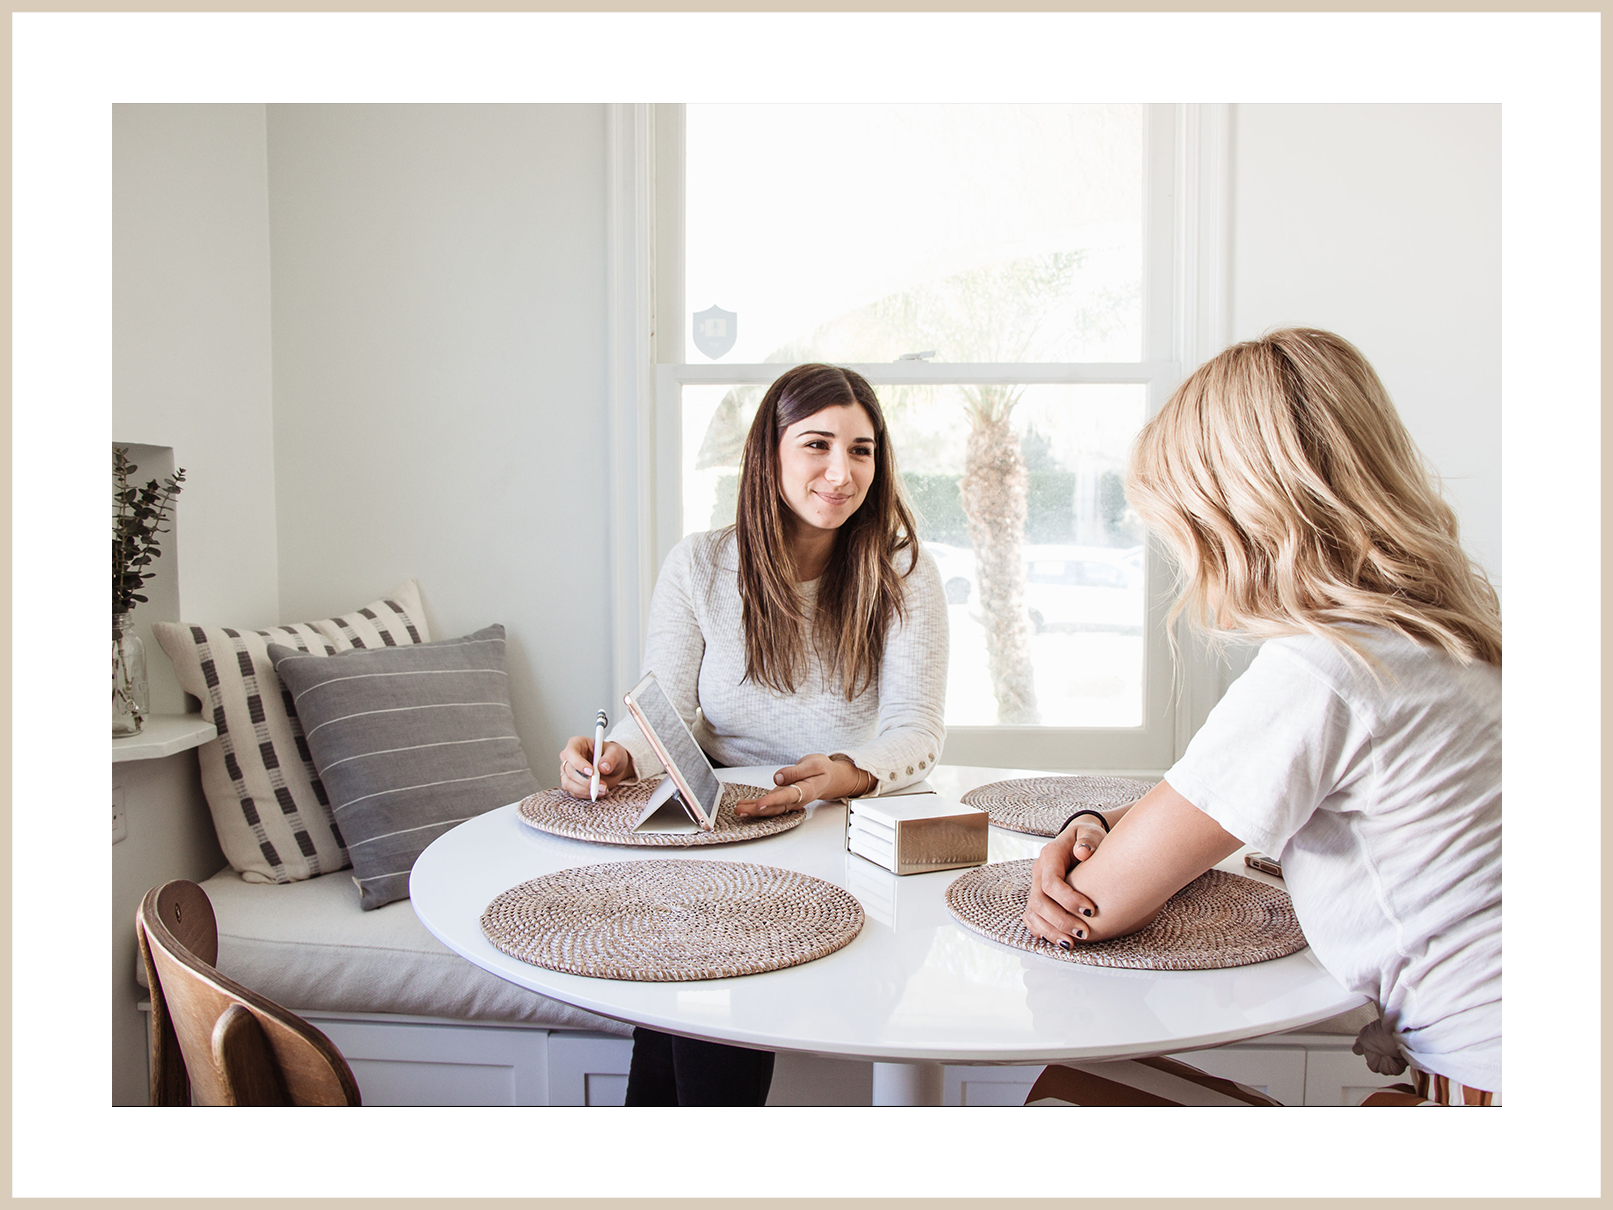 Custom Consult - We will identify any challenges you may be confronting in your space, establish a clear vision of success for your space, and create a plan of action to reach your goals. This service includes:▻ Comprehensive space consultation▻ Customized action plan for your space▻ Recommendations + resources